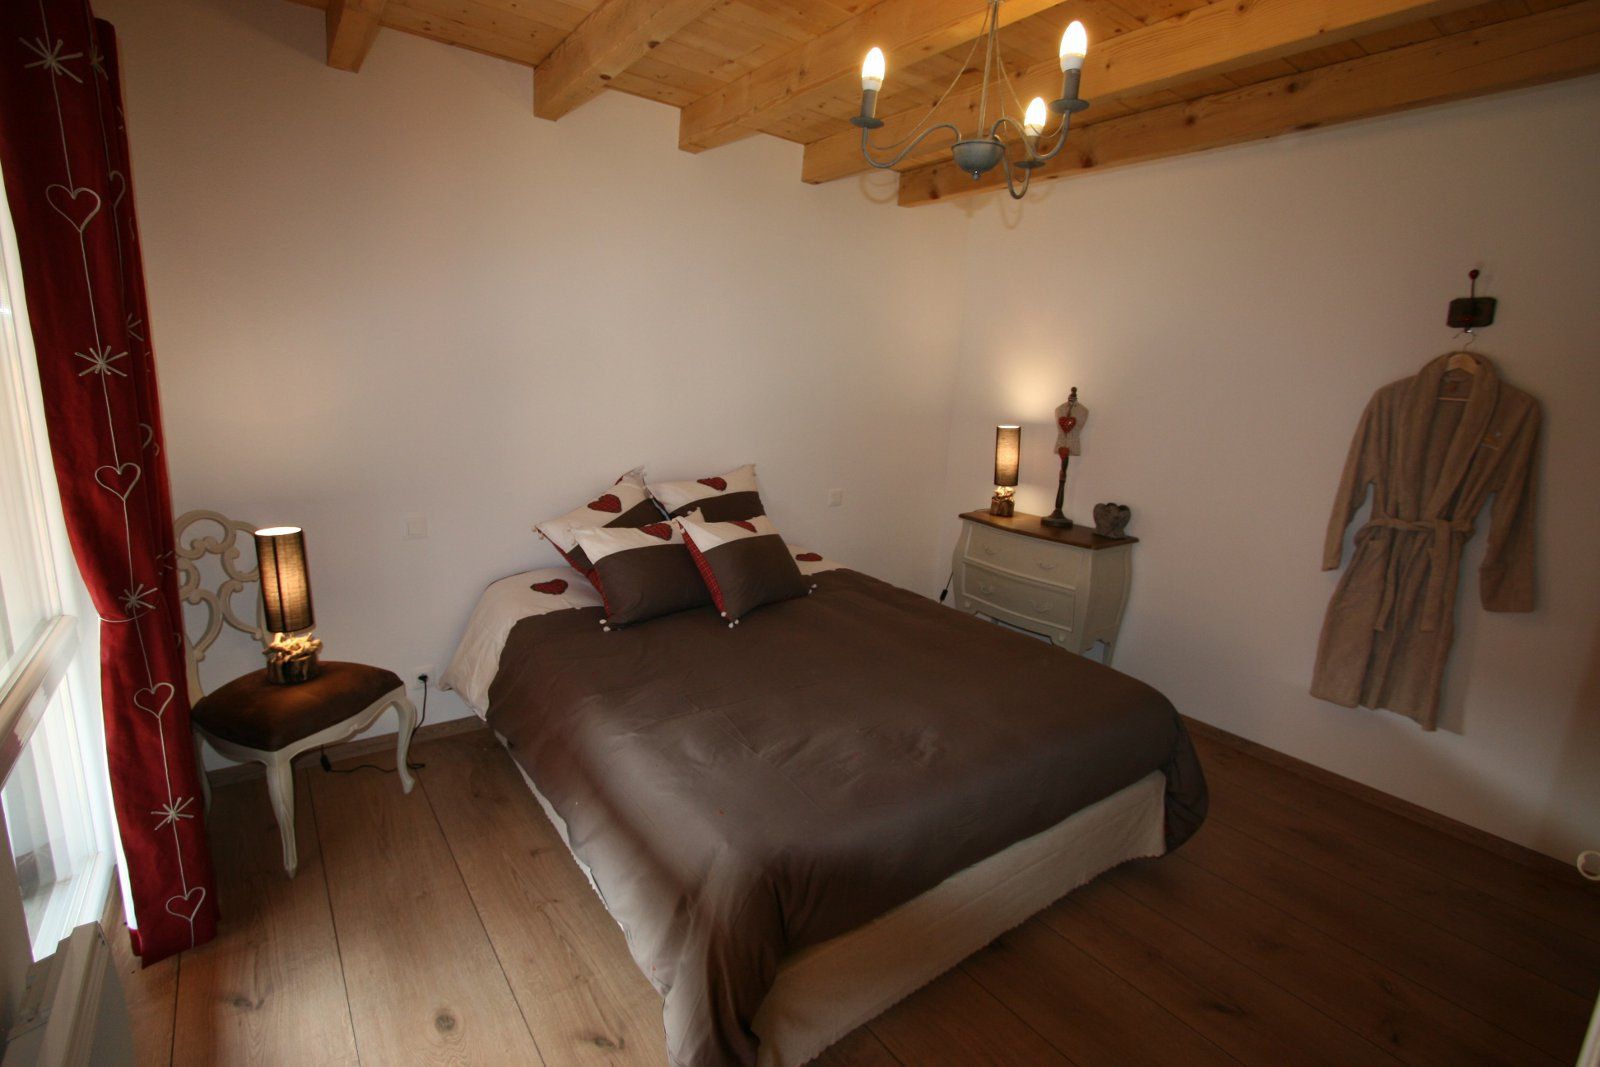 Furnished accomodation Les Authentics - Le Domaine d'Autrefois : L'écurie